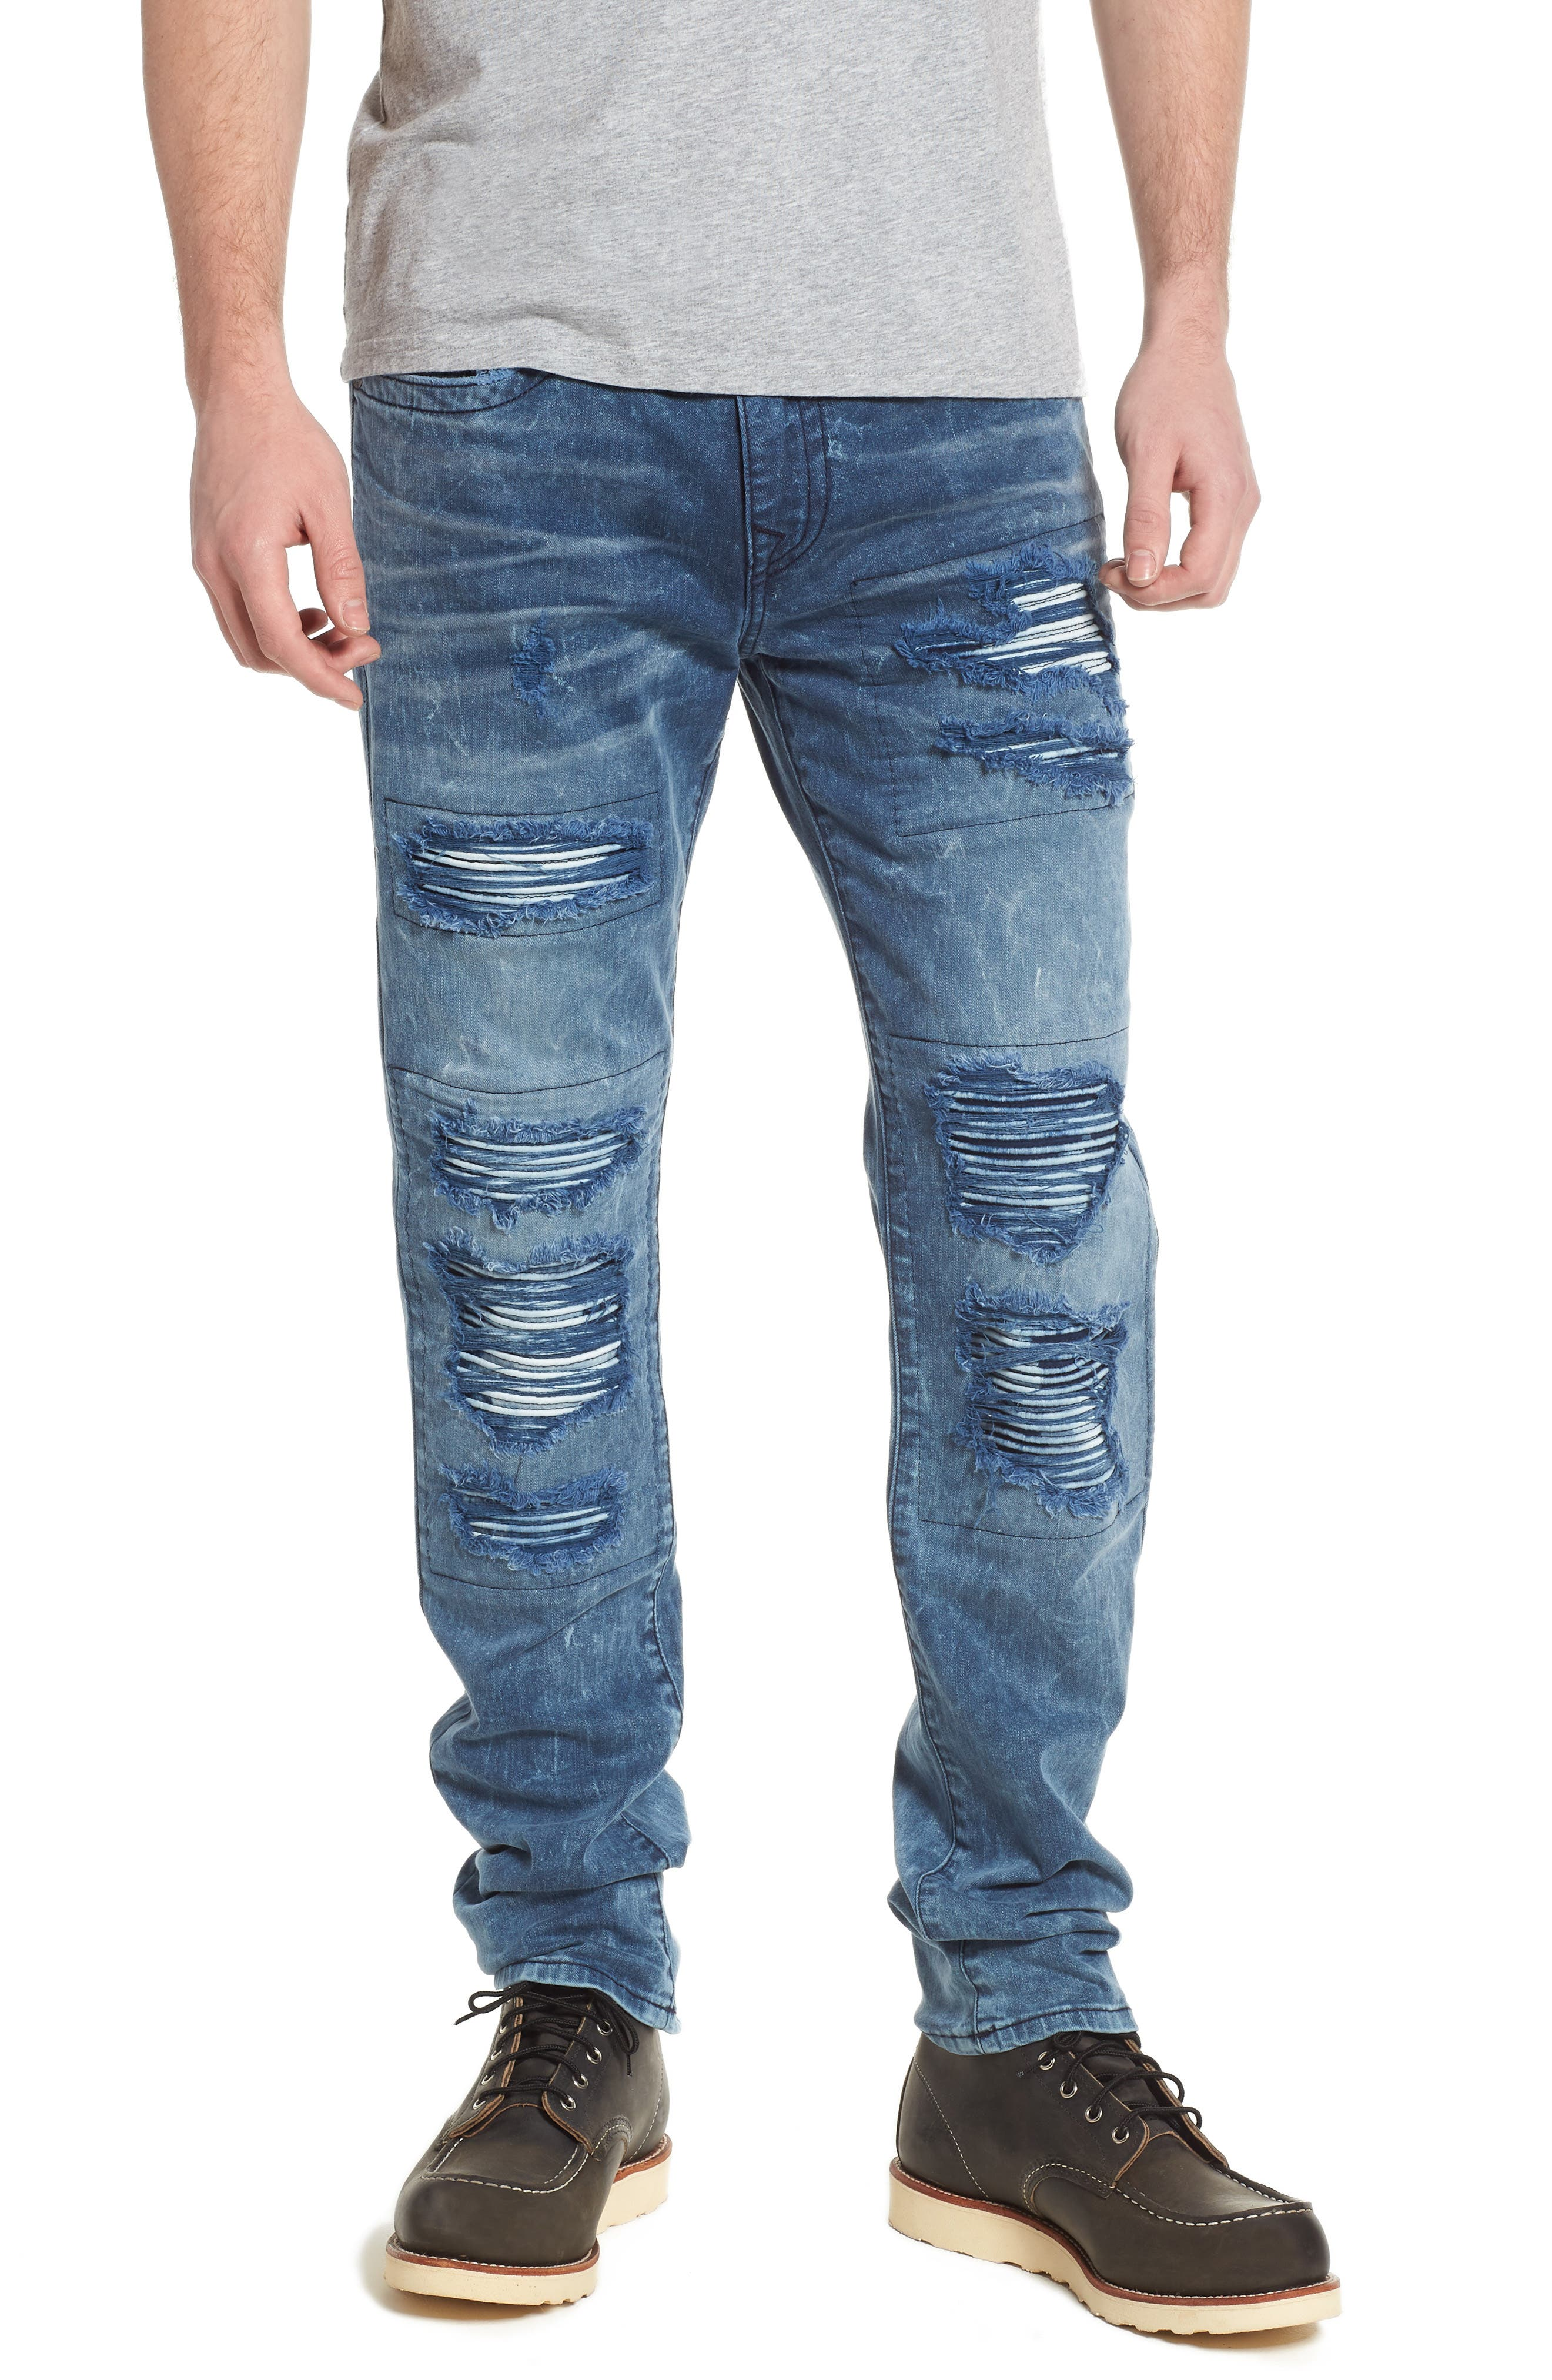 Rocco Skinny Fit Jeans,                         Main,                         color, Blue